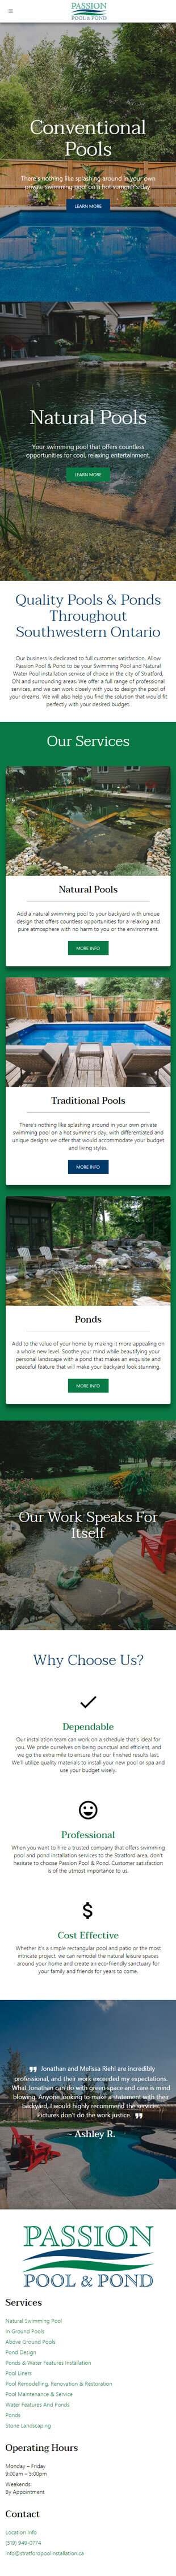 Passion Pool and Pond